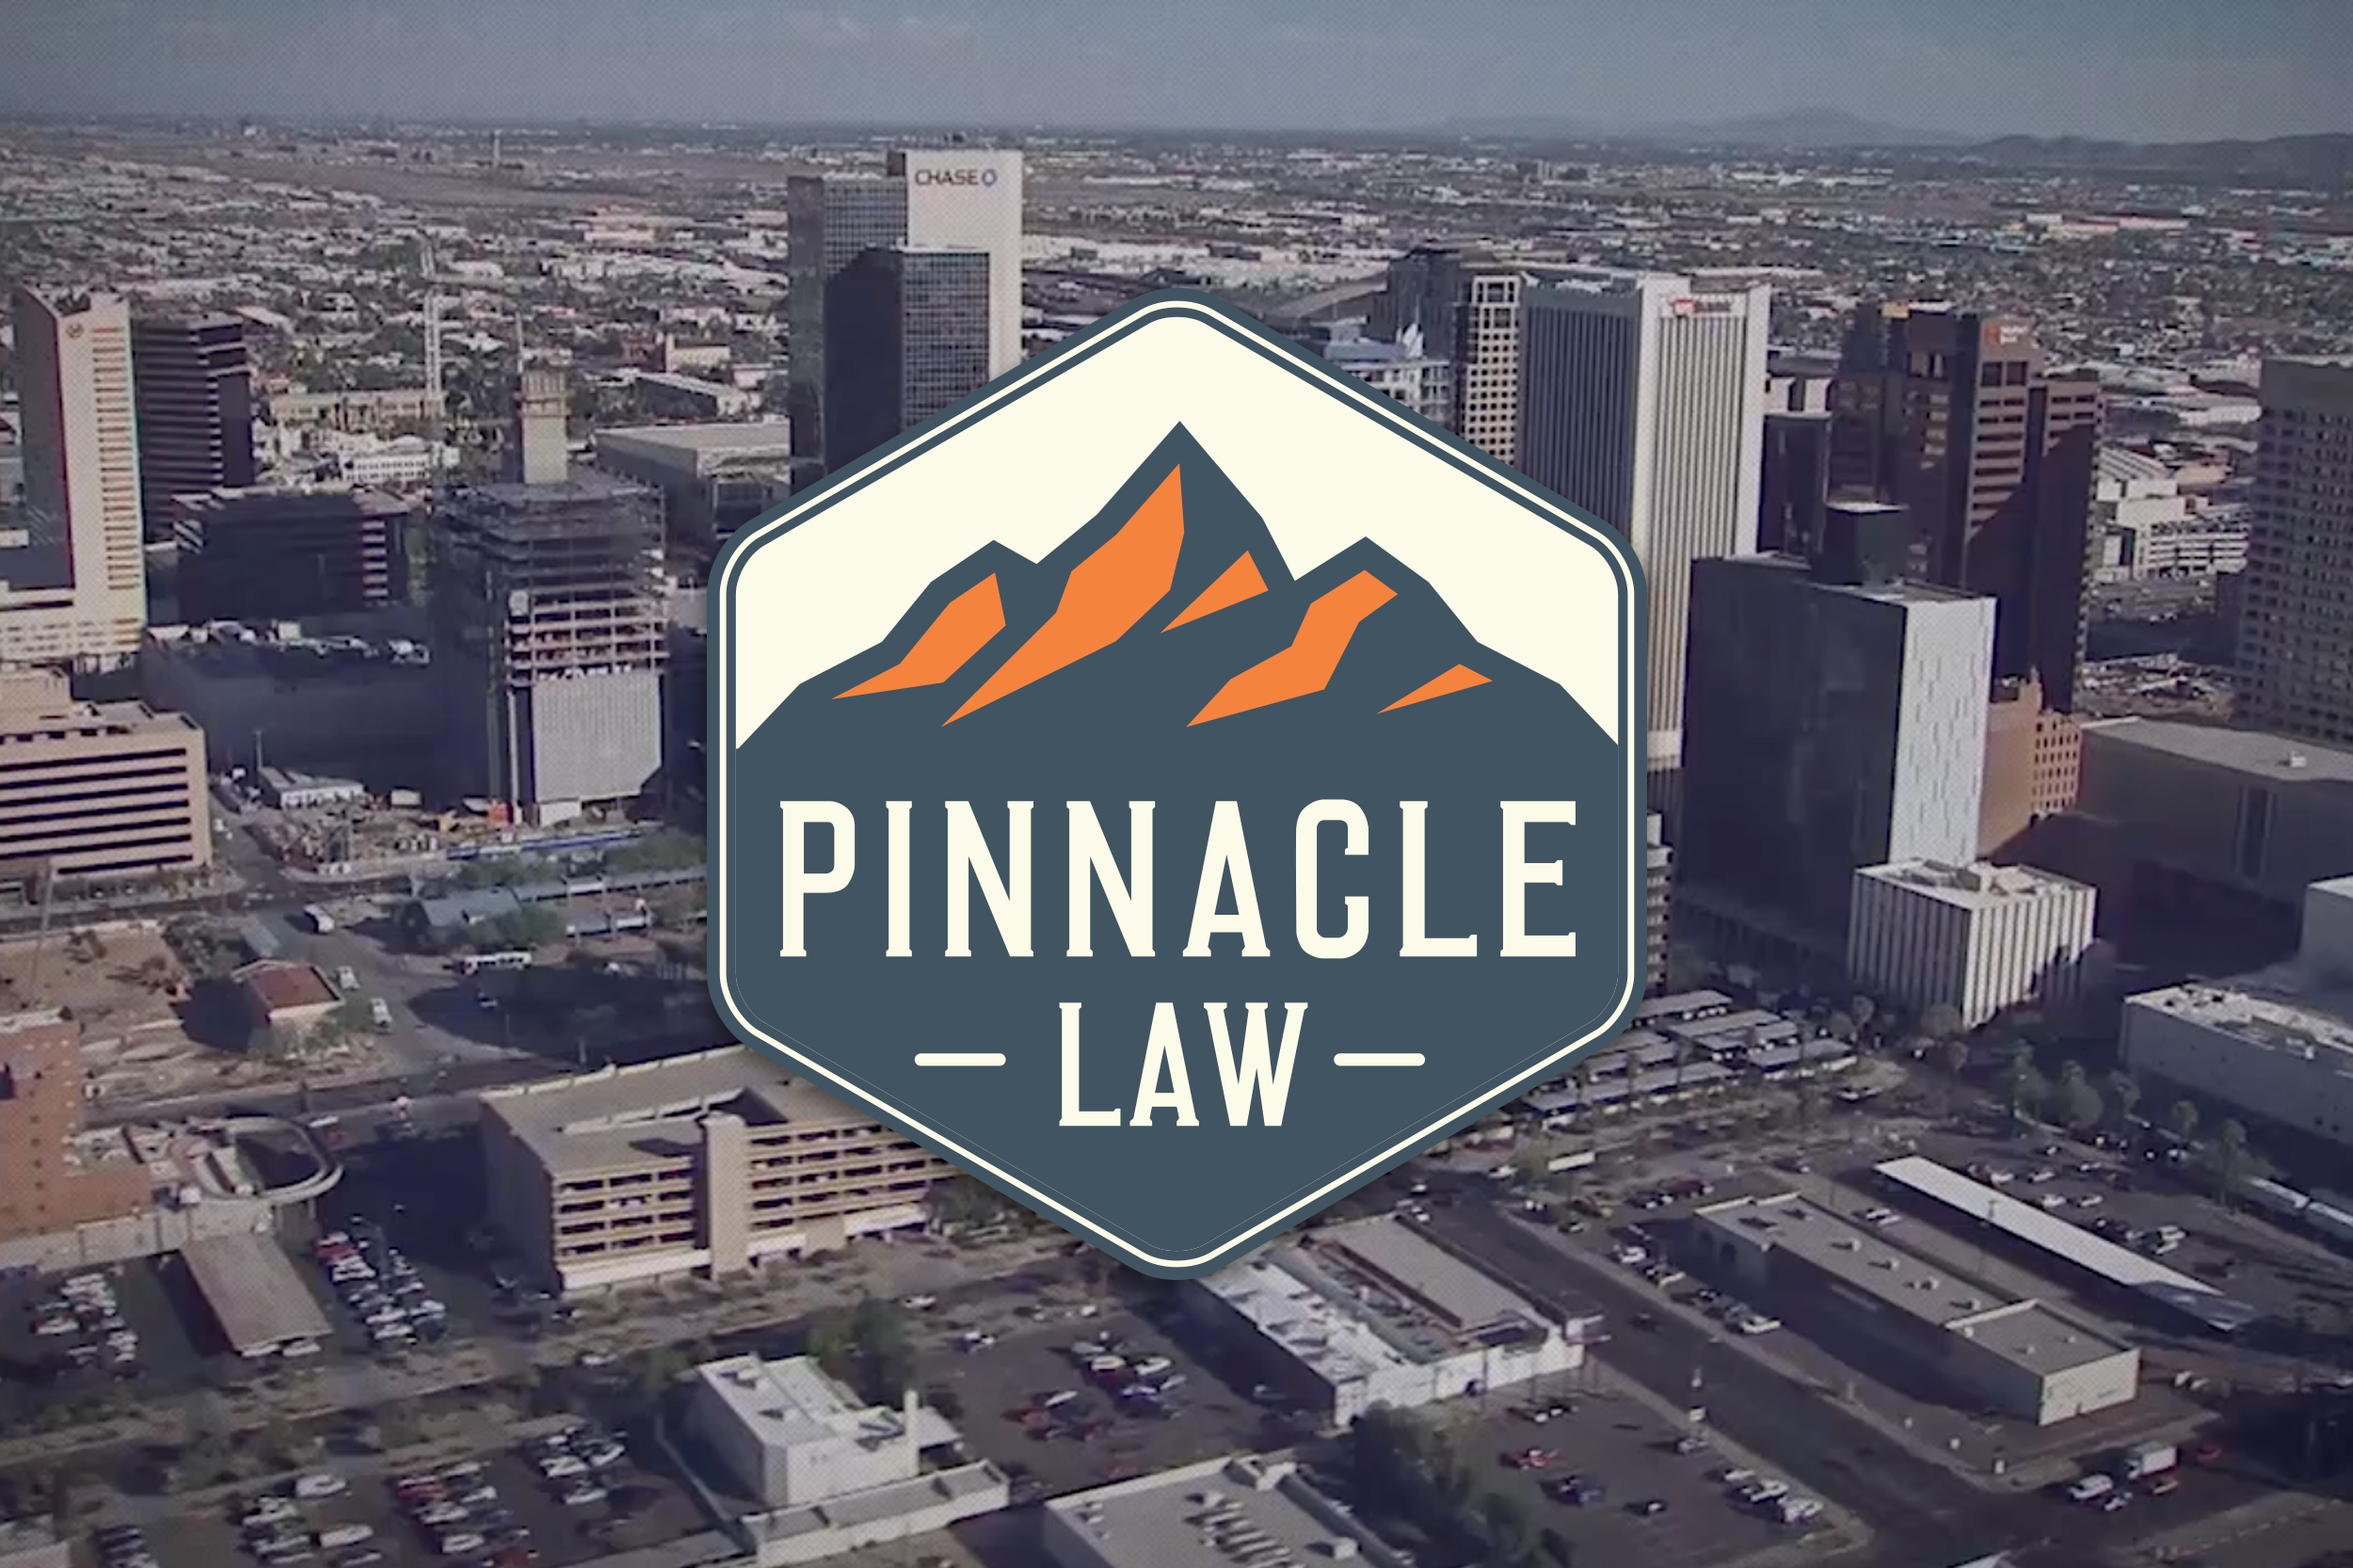 Pinnacle Law - Branding & Interactive  View Project